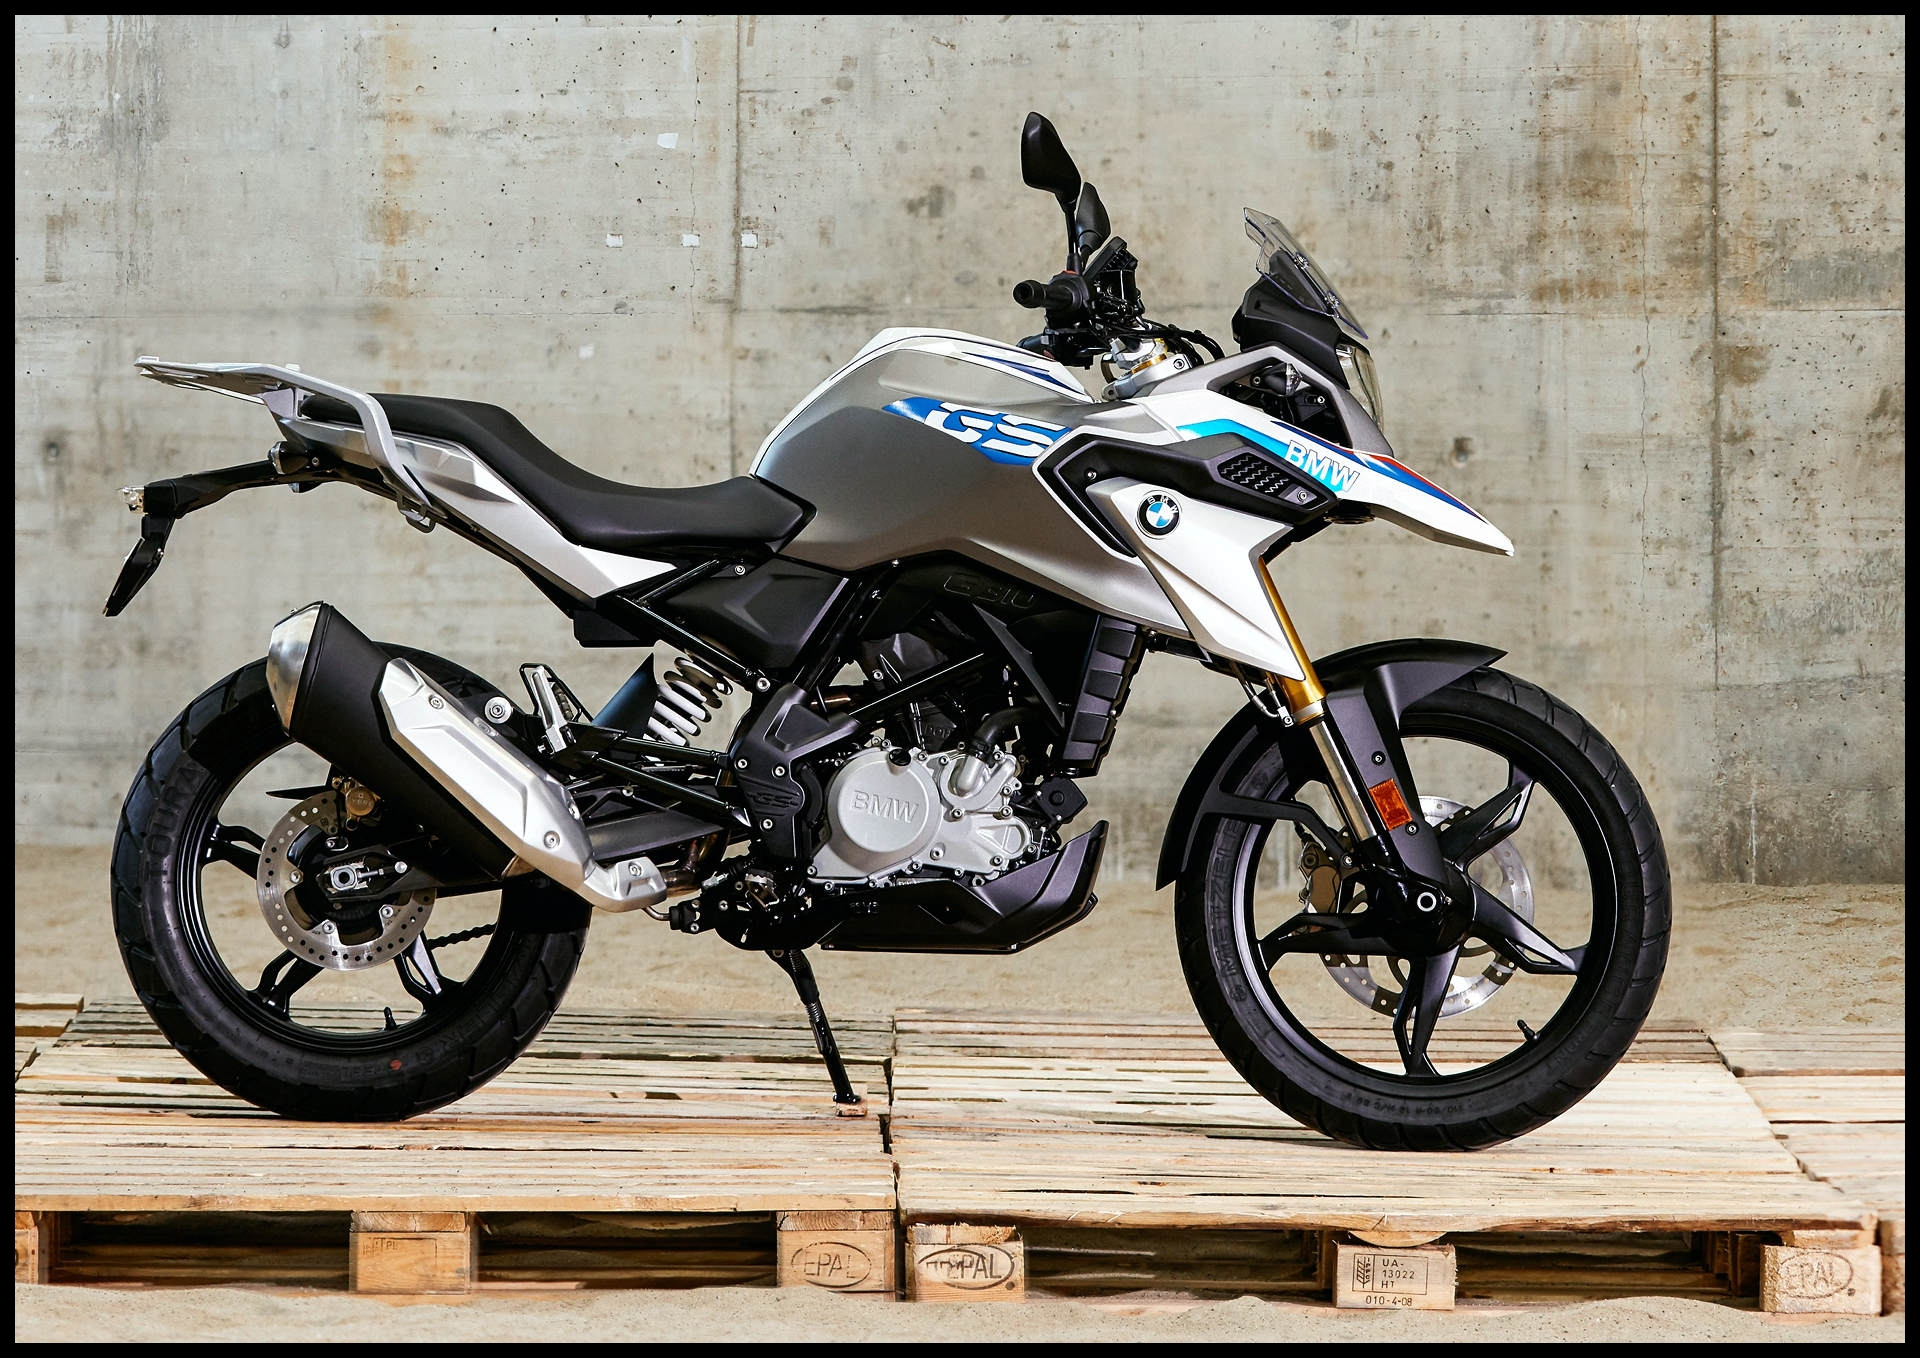 New BMW G 310 GS fers Lightweight Adventure with video